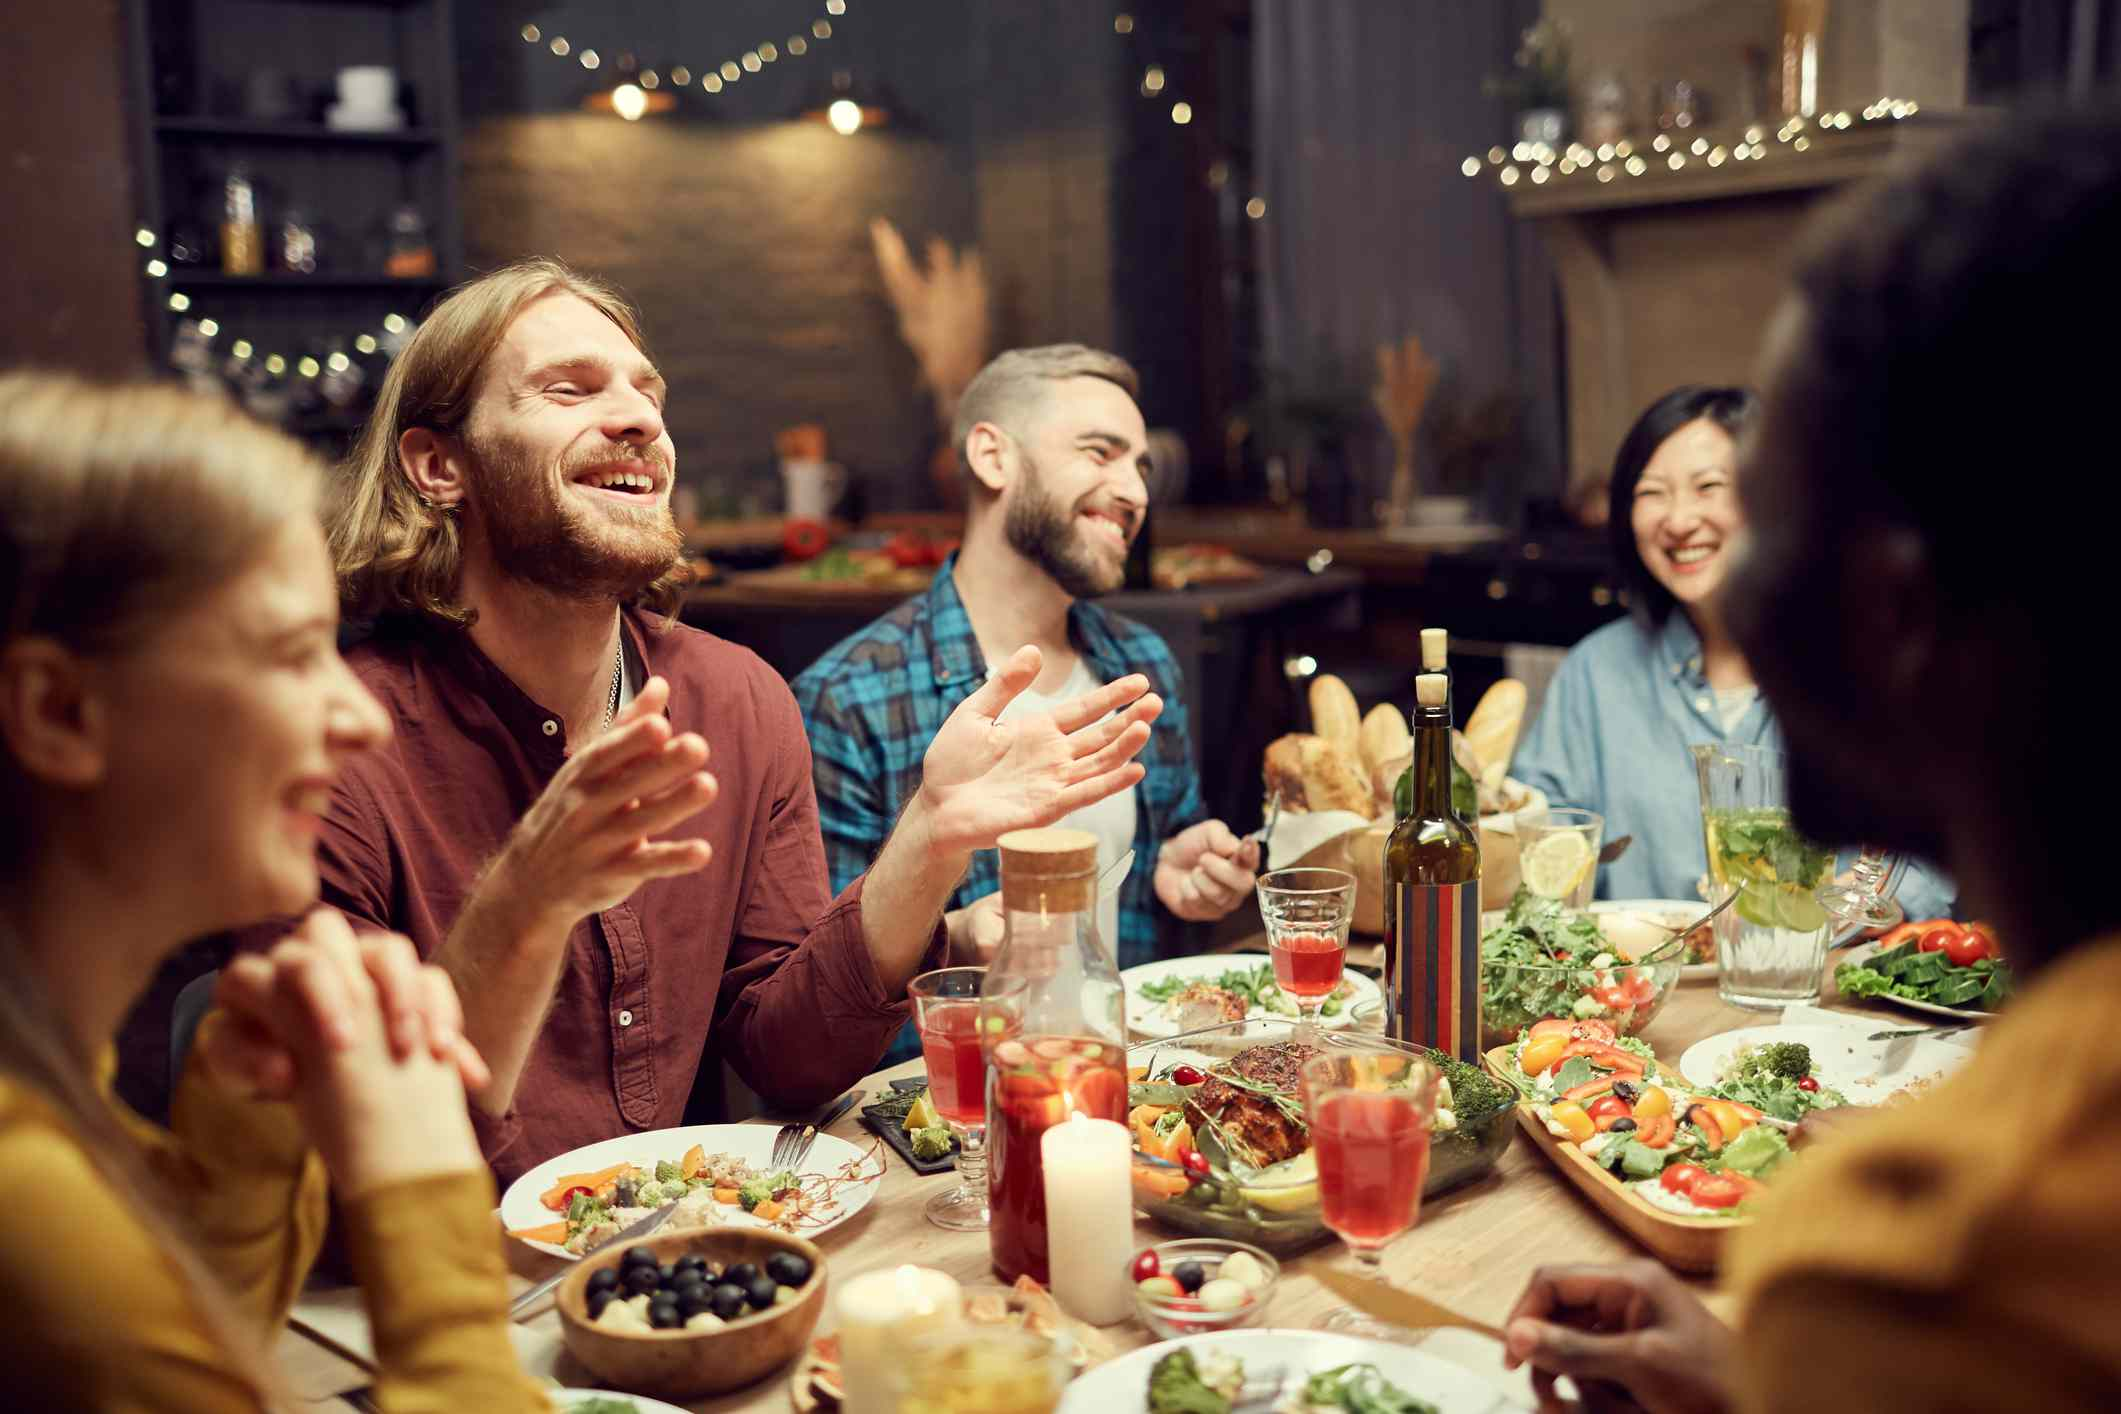 Friends laughing and having dinner together